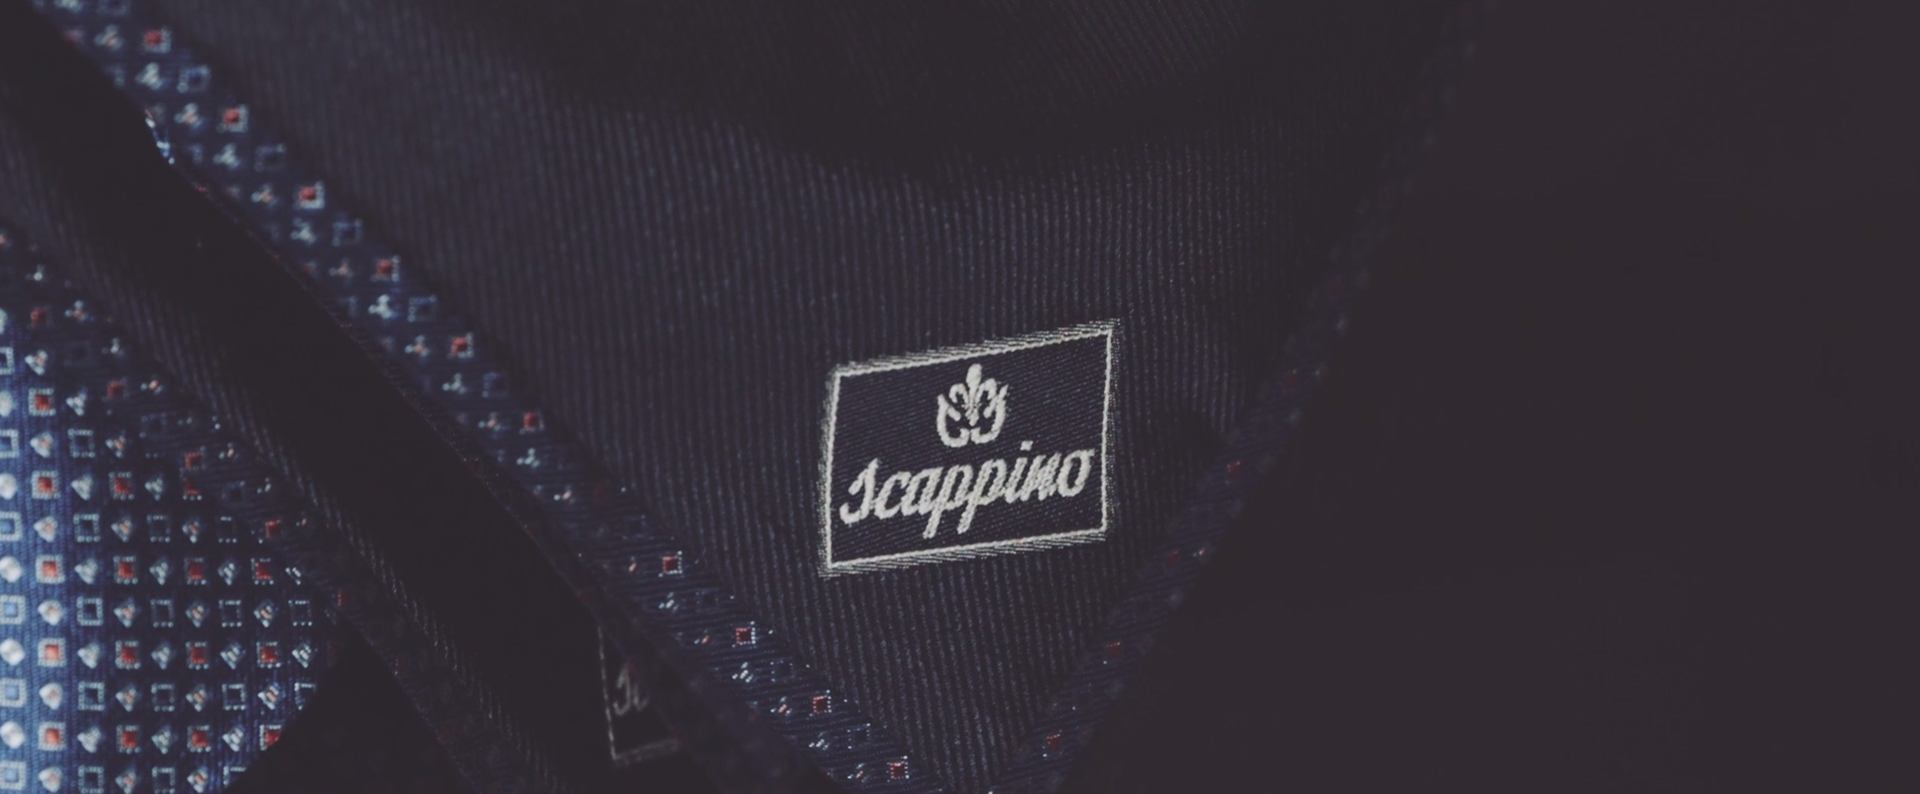 Scappino03.jpg